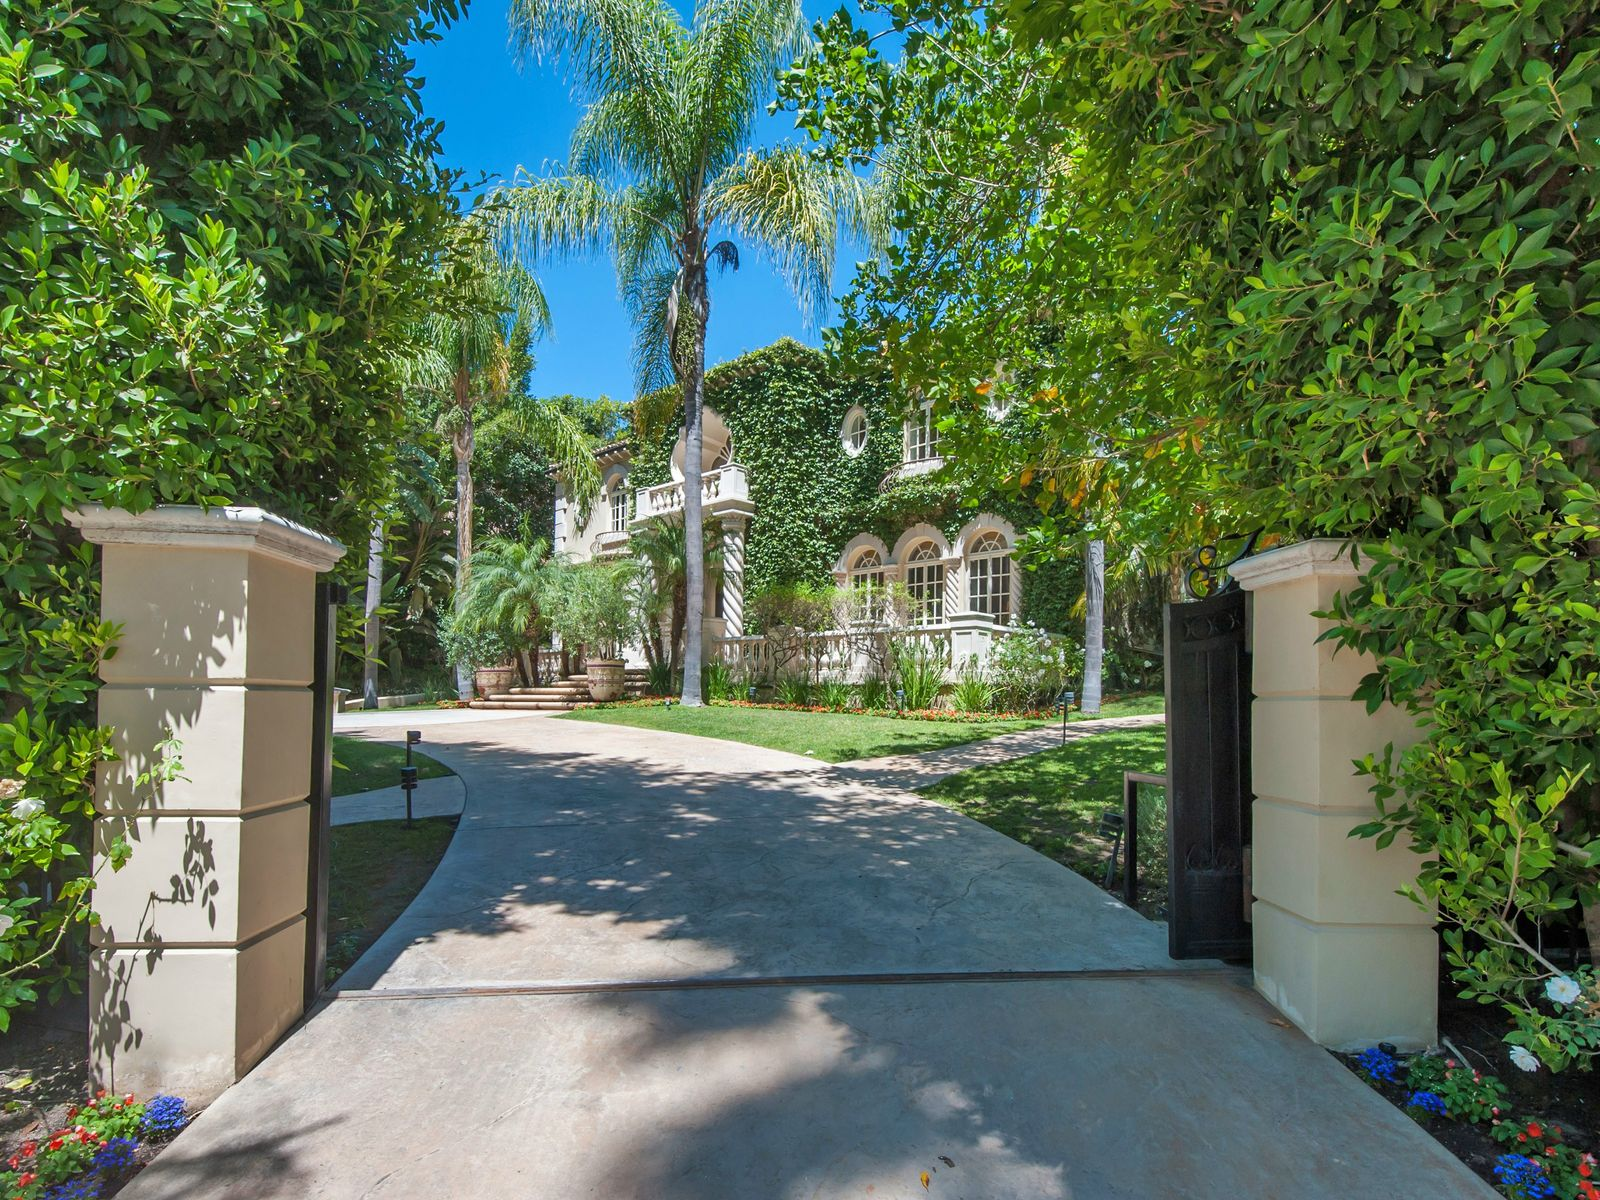 Timeless and Sophisticated Villa, Beverly Hills CA Villa - Los Angeles Real Estate